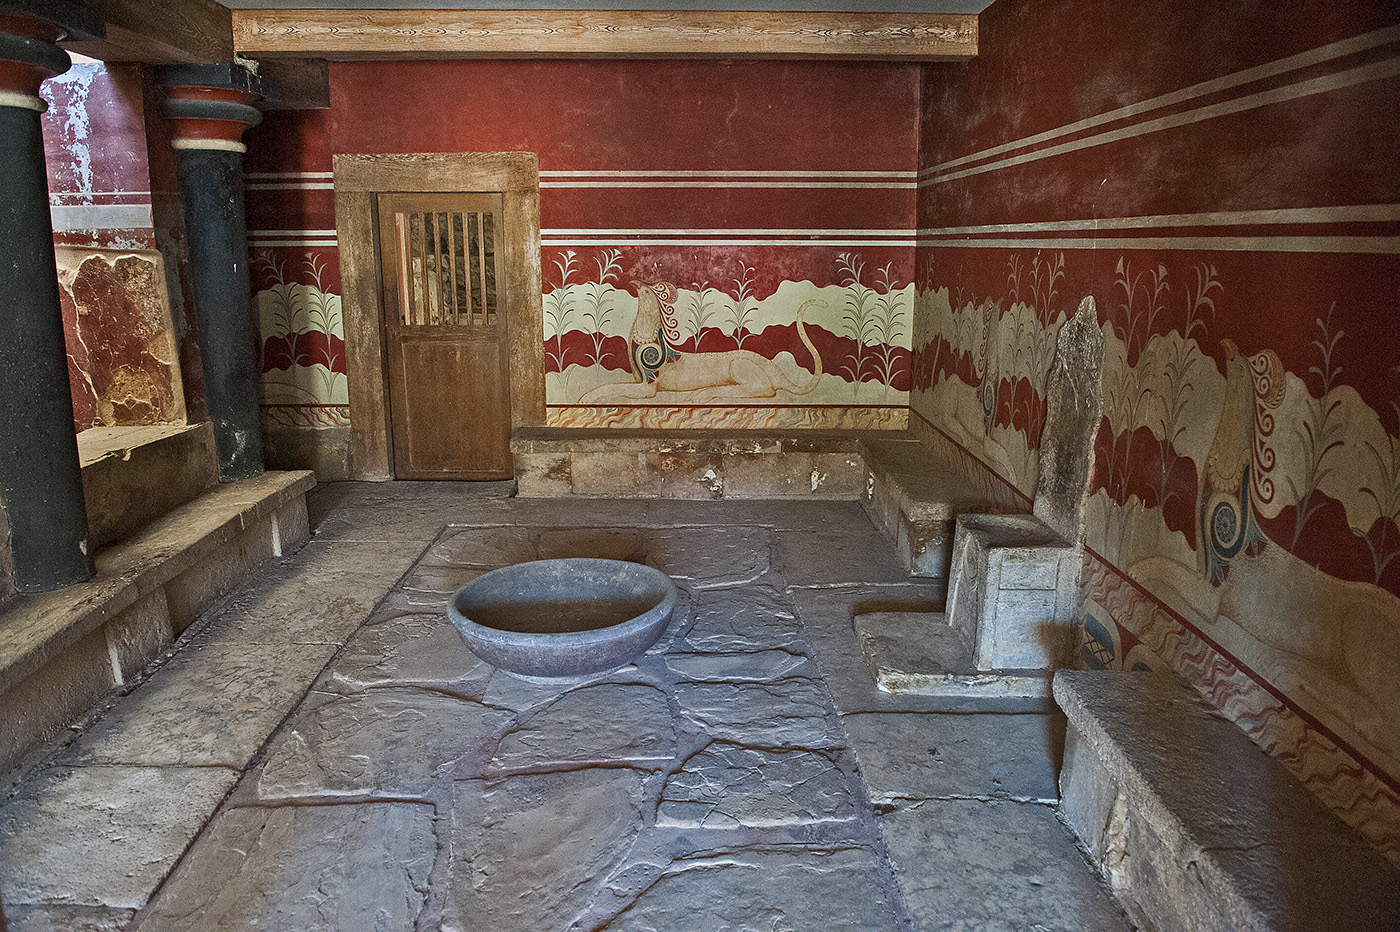 Knossos, Heraklion, Crete, Greece